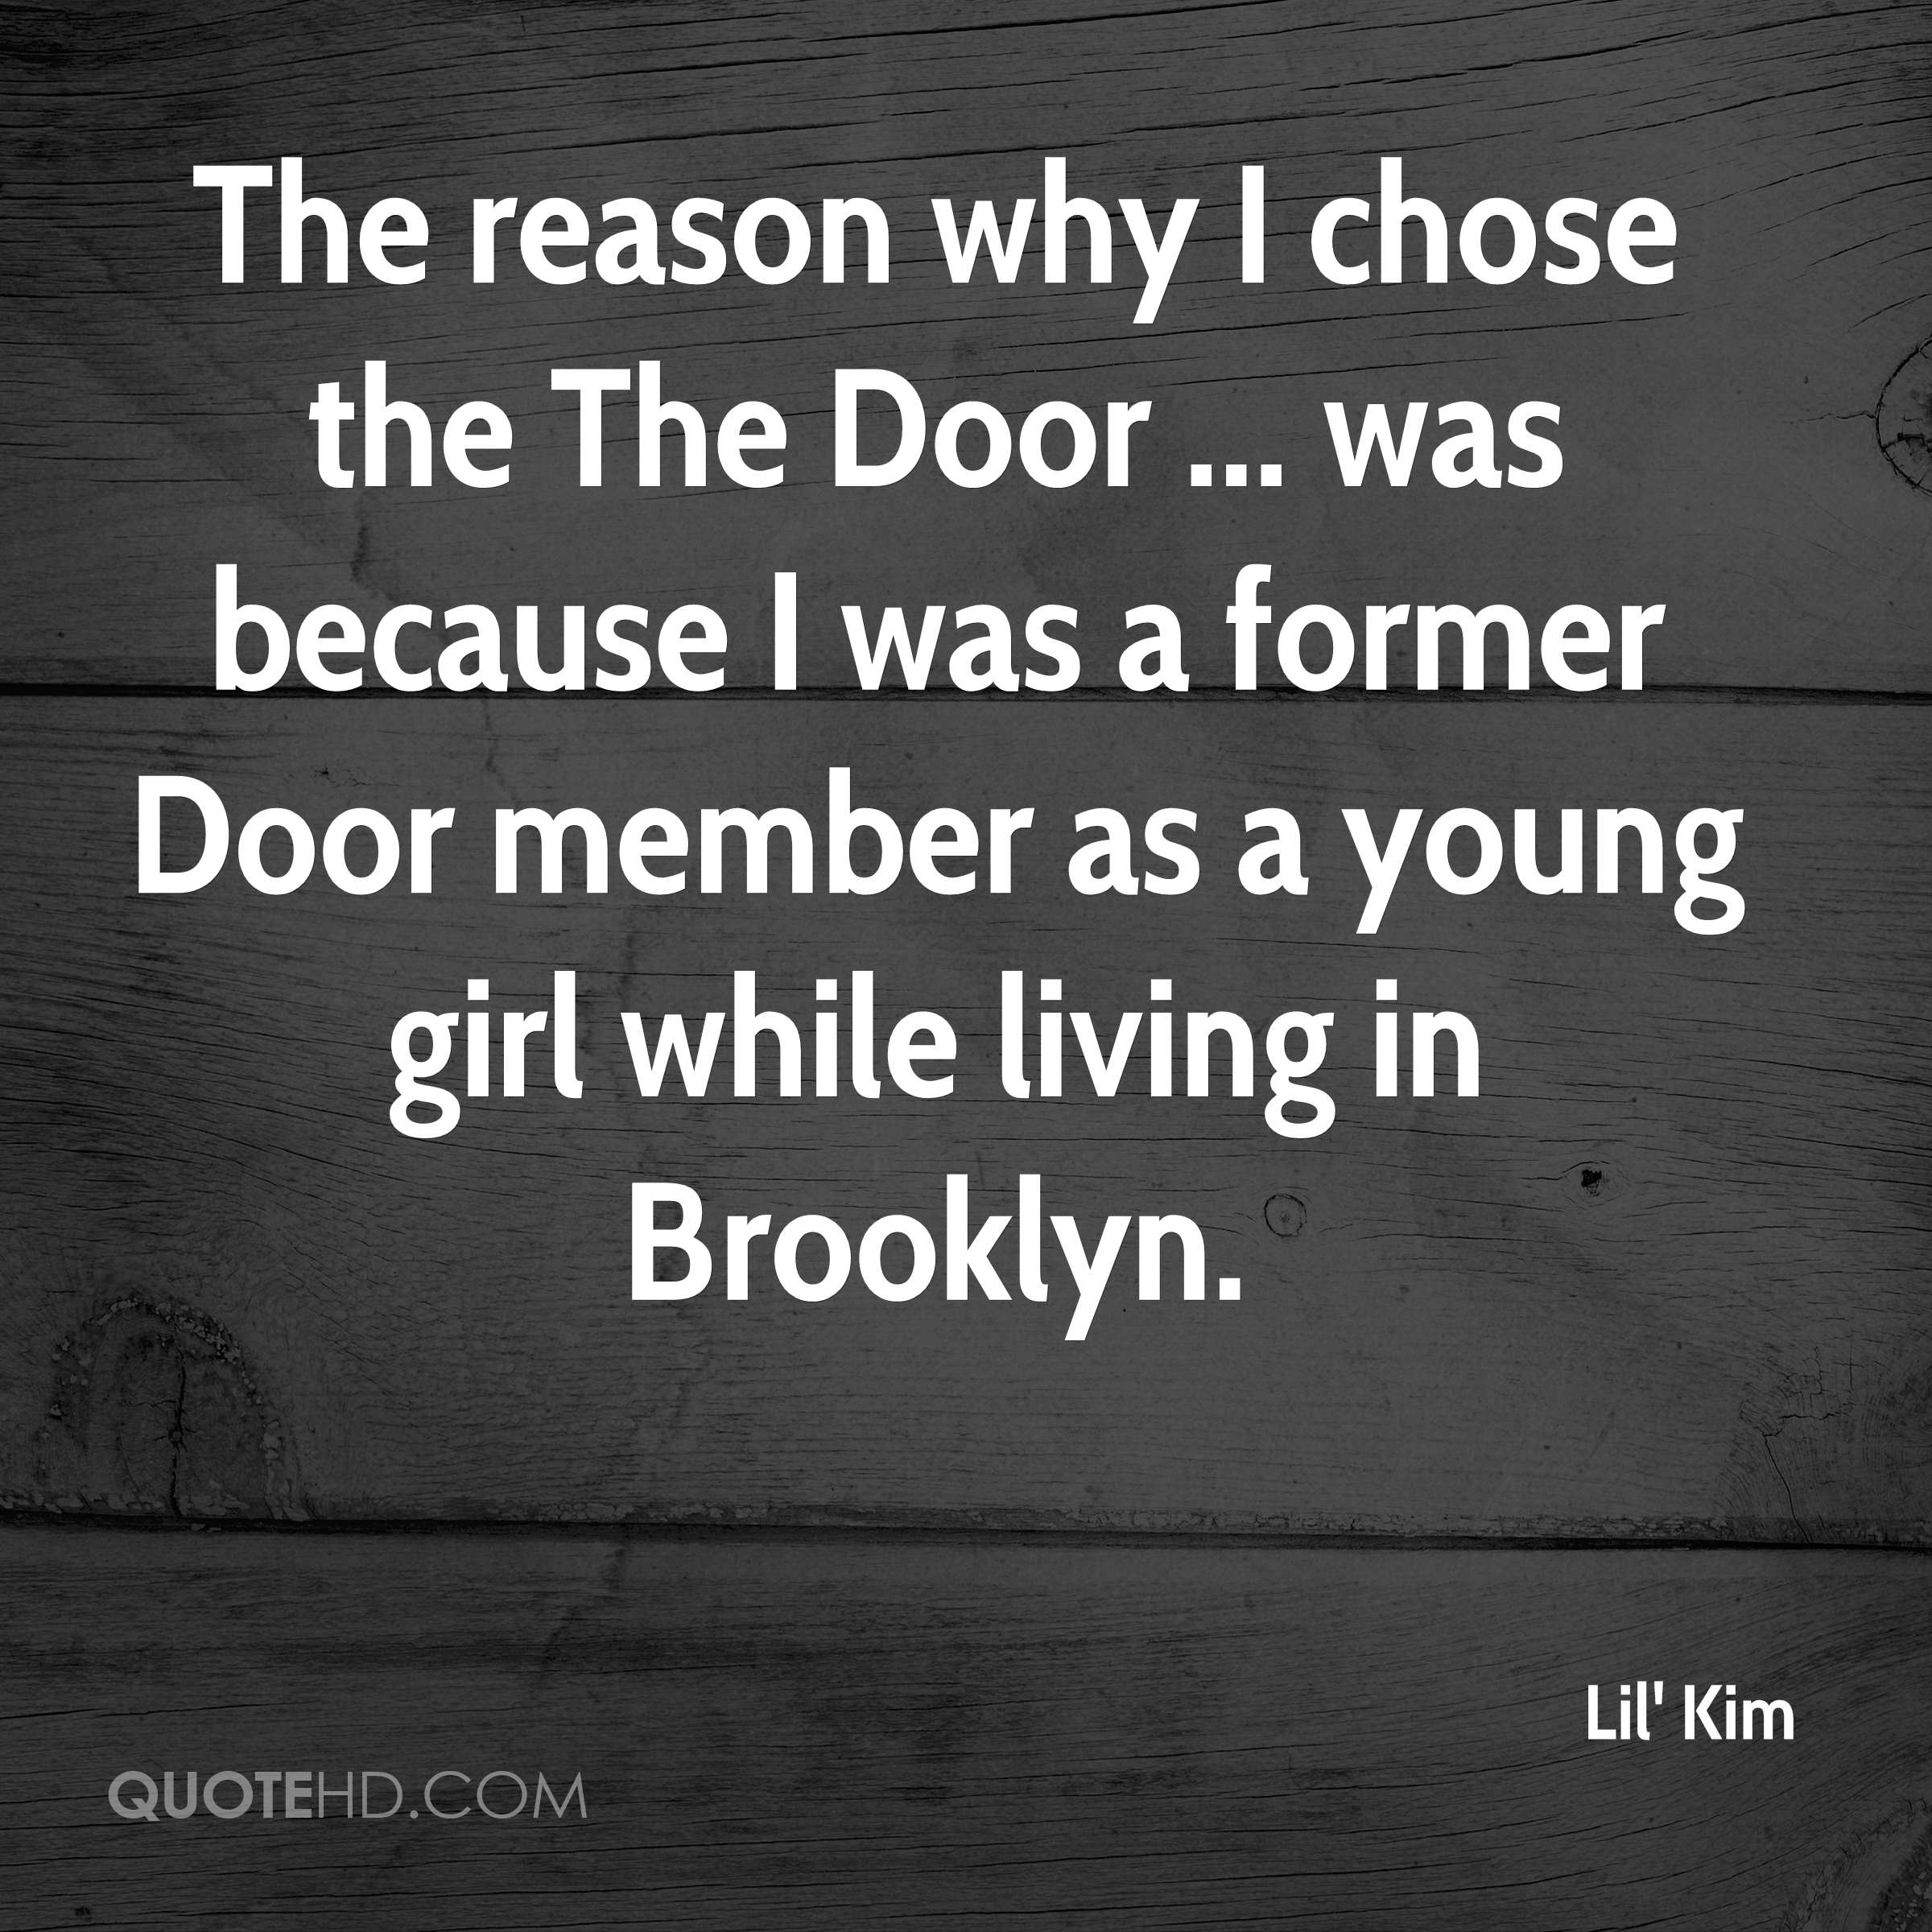 The reason why I chose the The Door ... was because I was a former Door member as a young girl while living in Brooklyn.